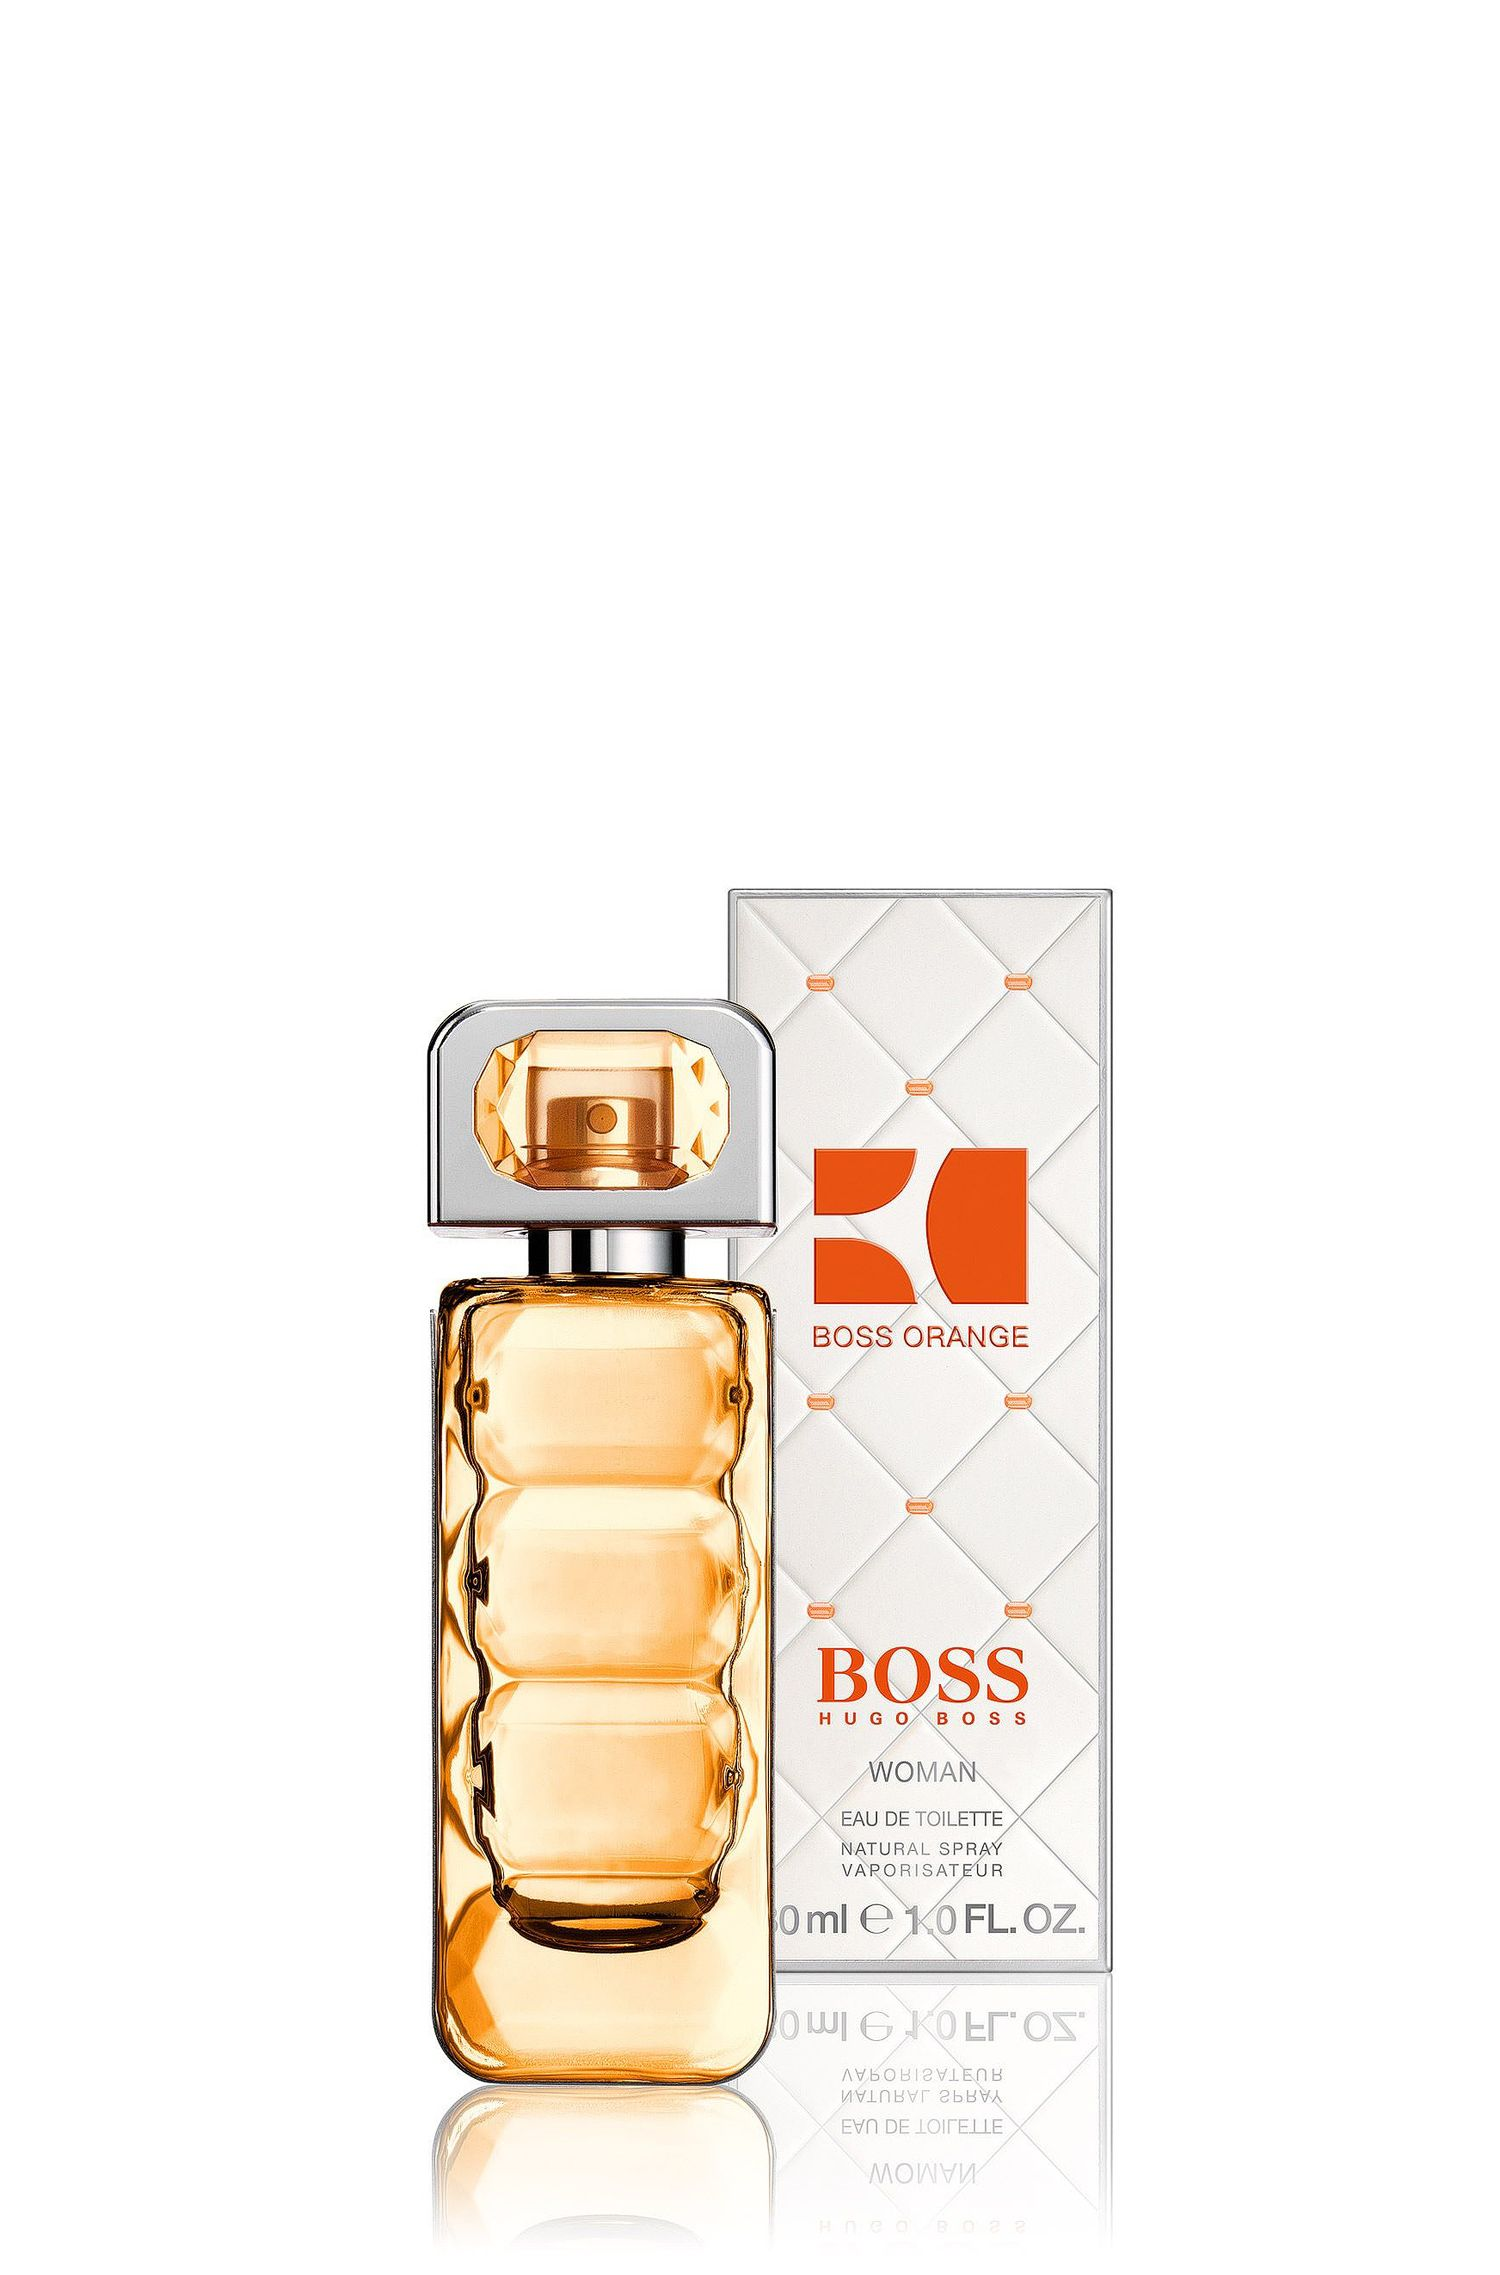 Eau de toilette BOSS Orange da donna da 30 ml